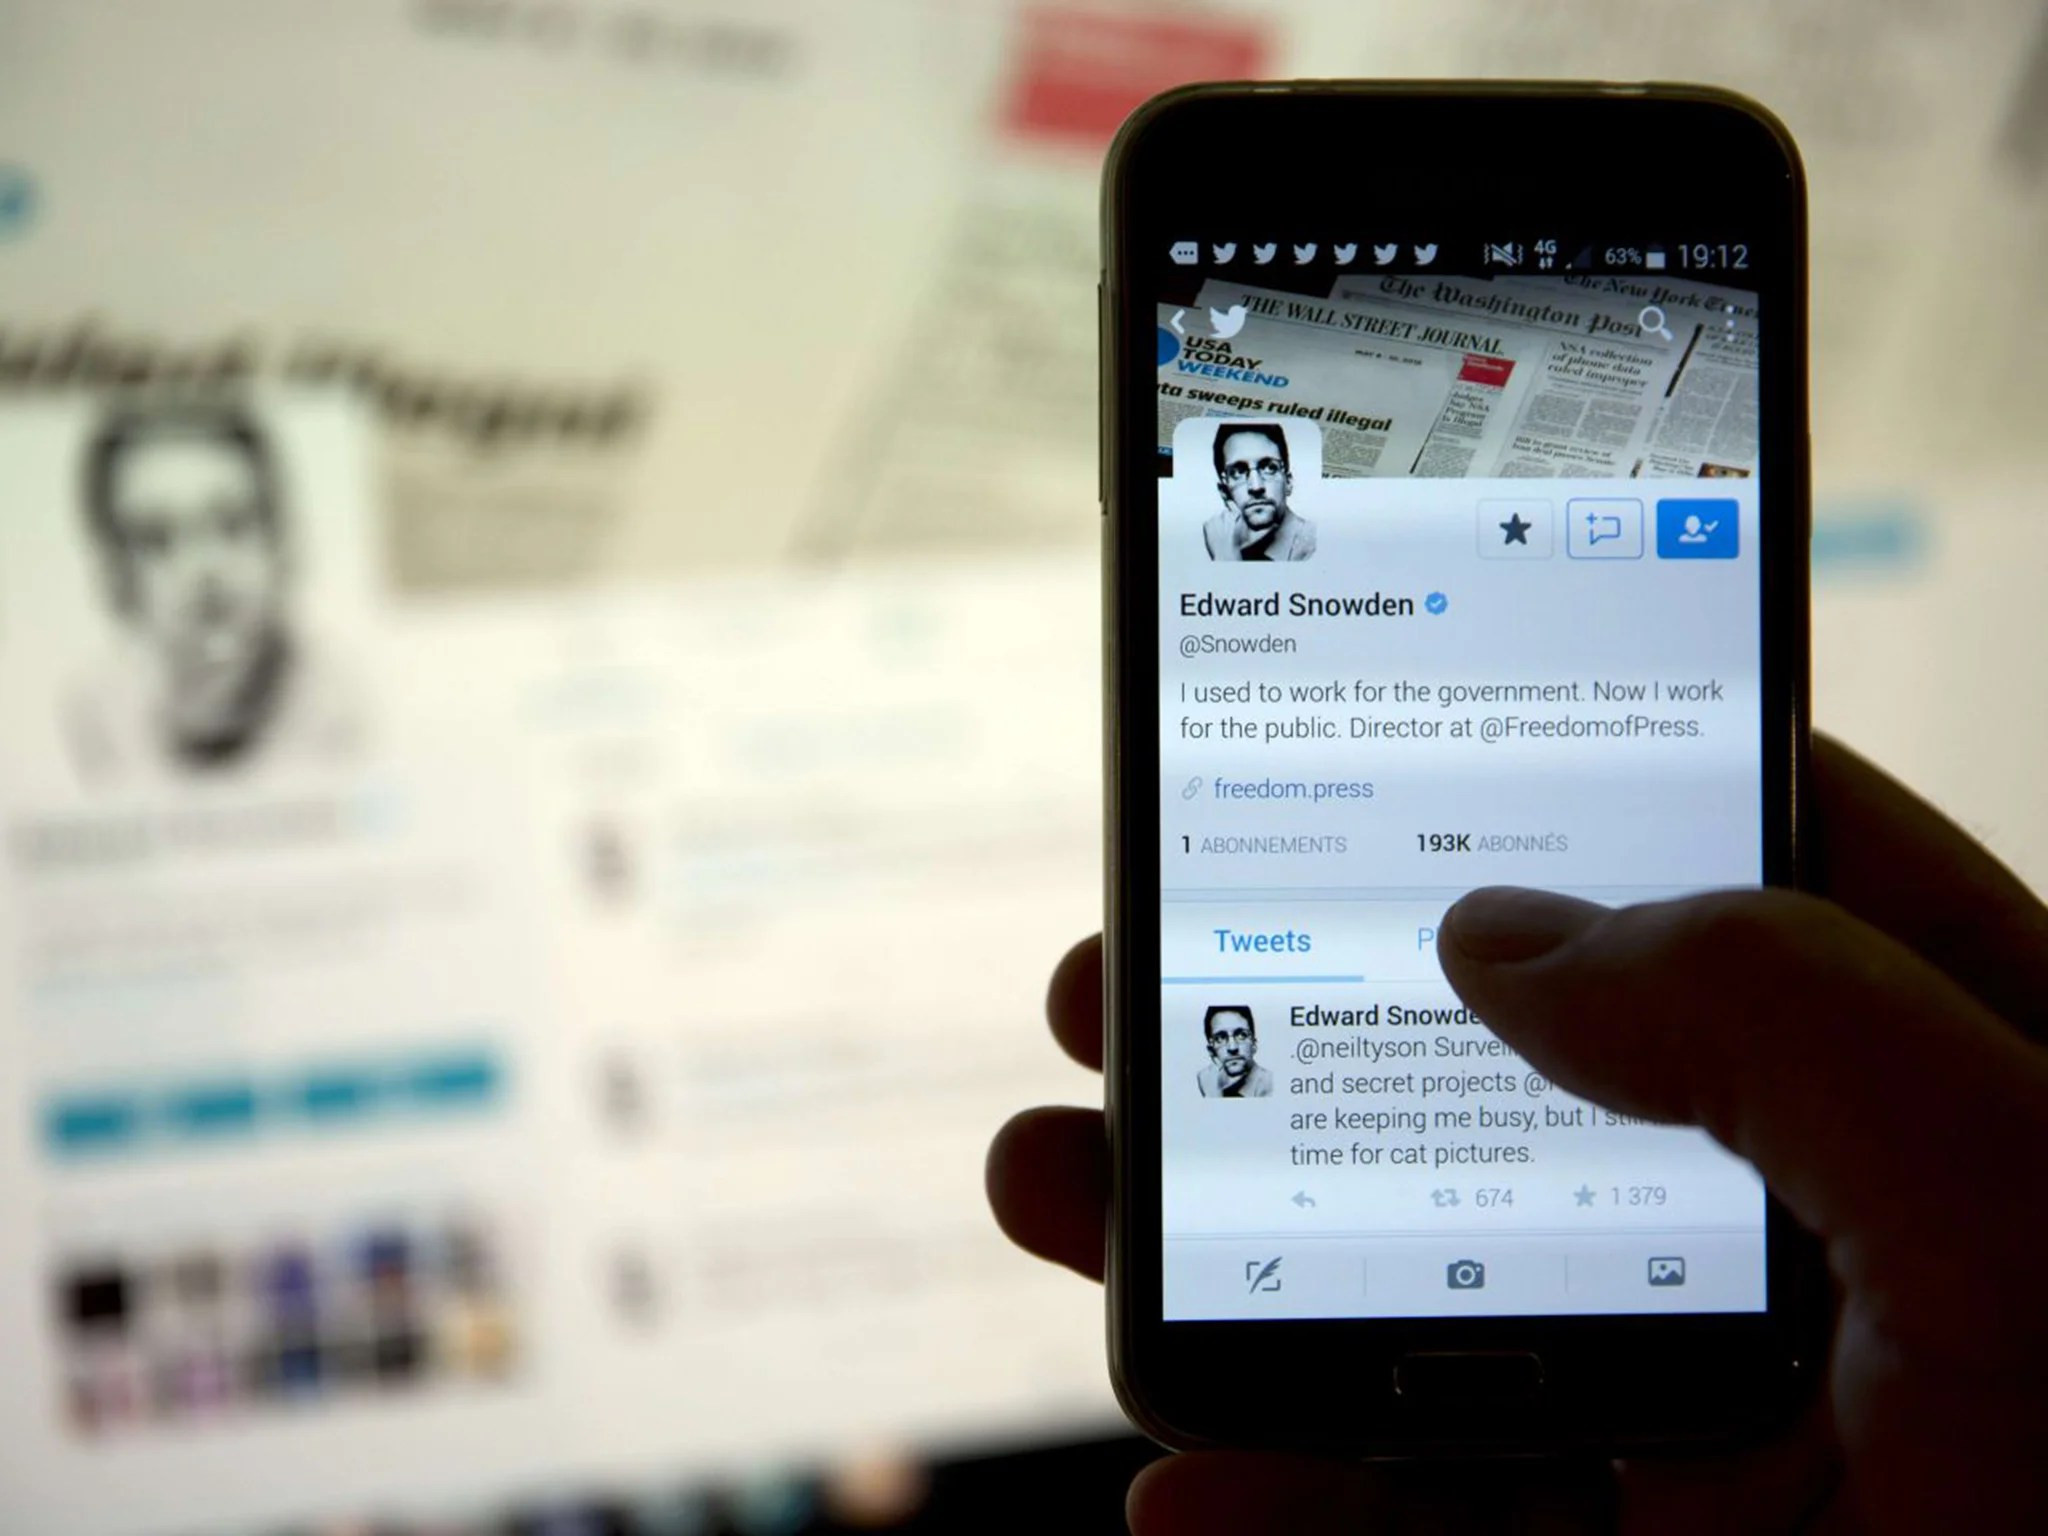 Iphone 6 Sans Abonnement Edward Snowden Smartphone Users Can Do Very Little To Stop